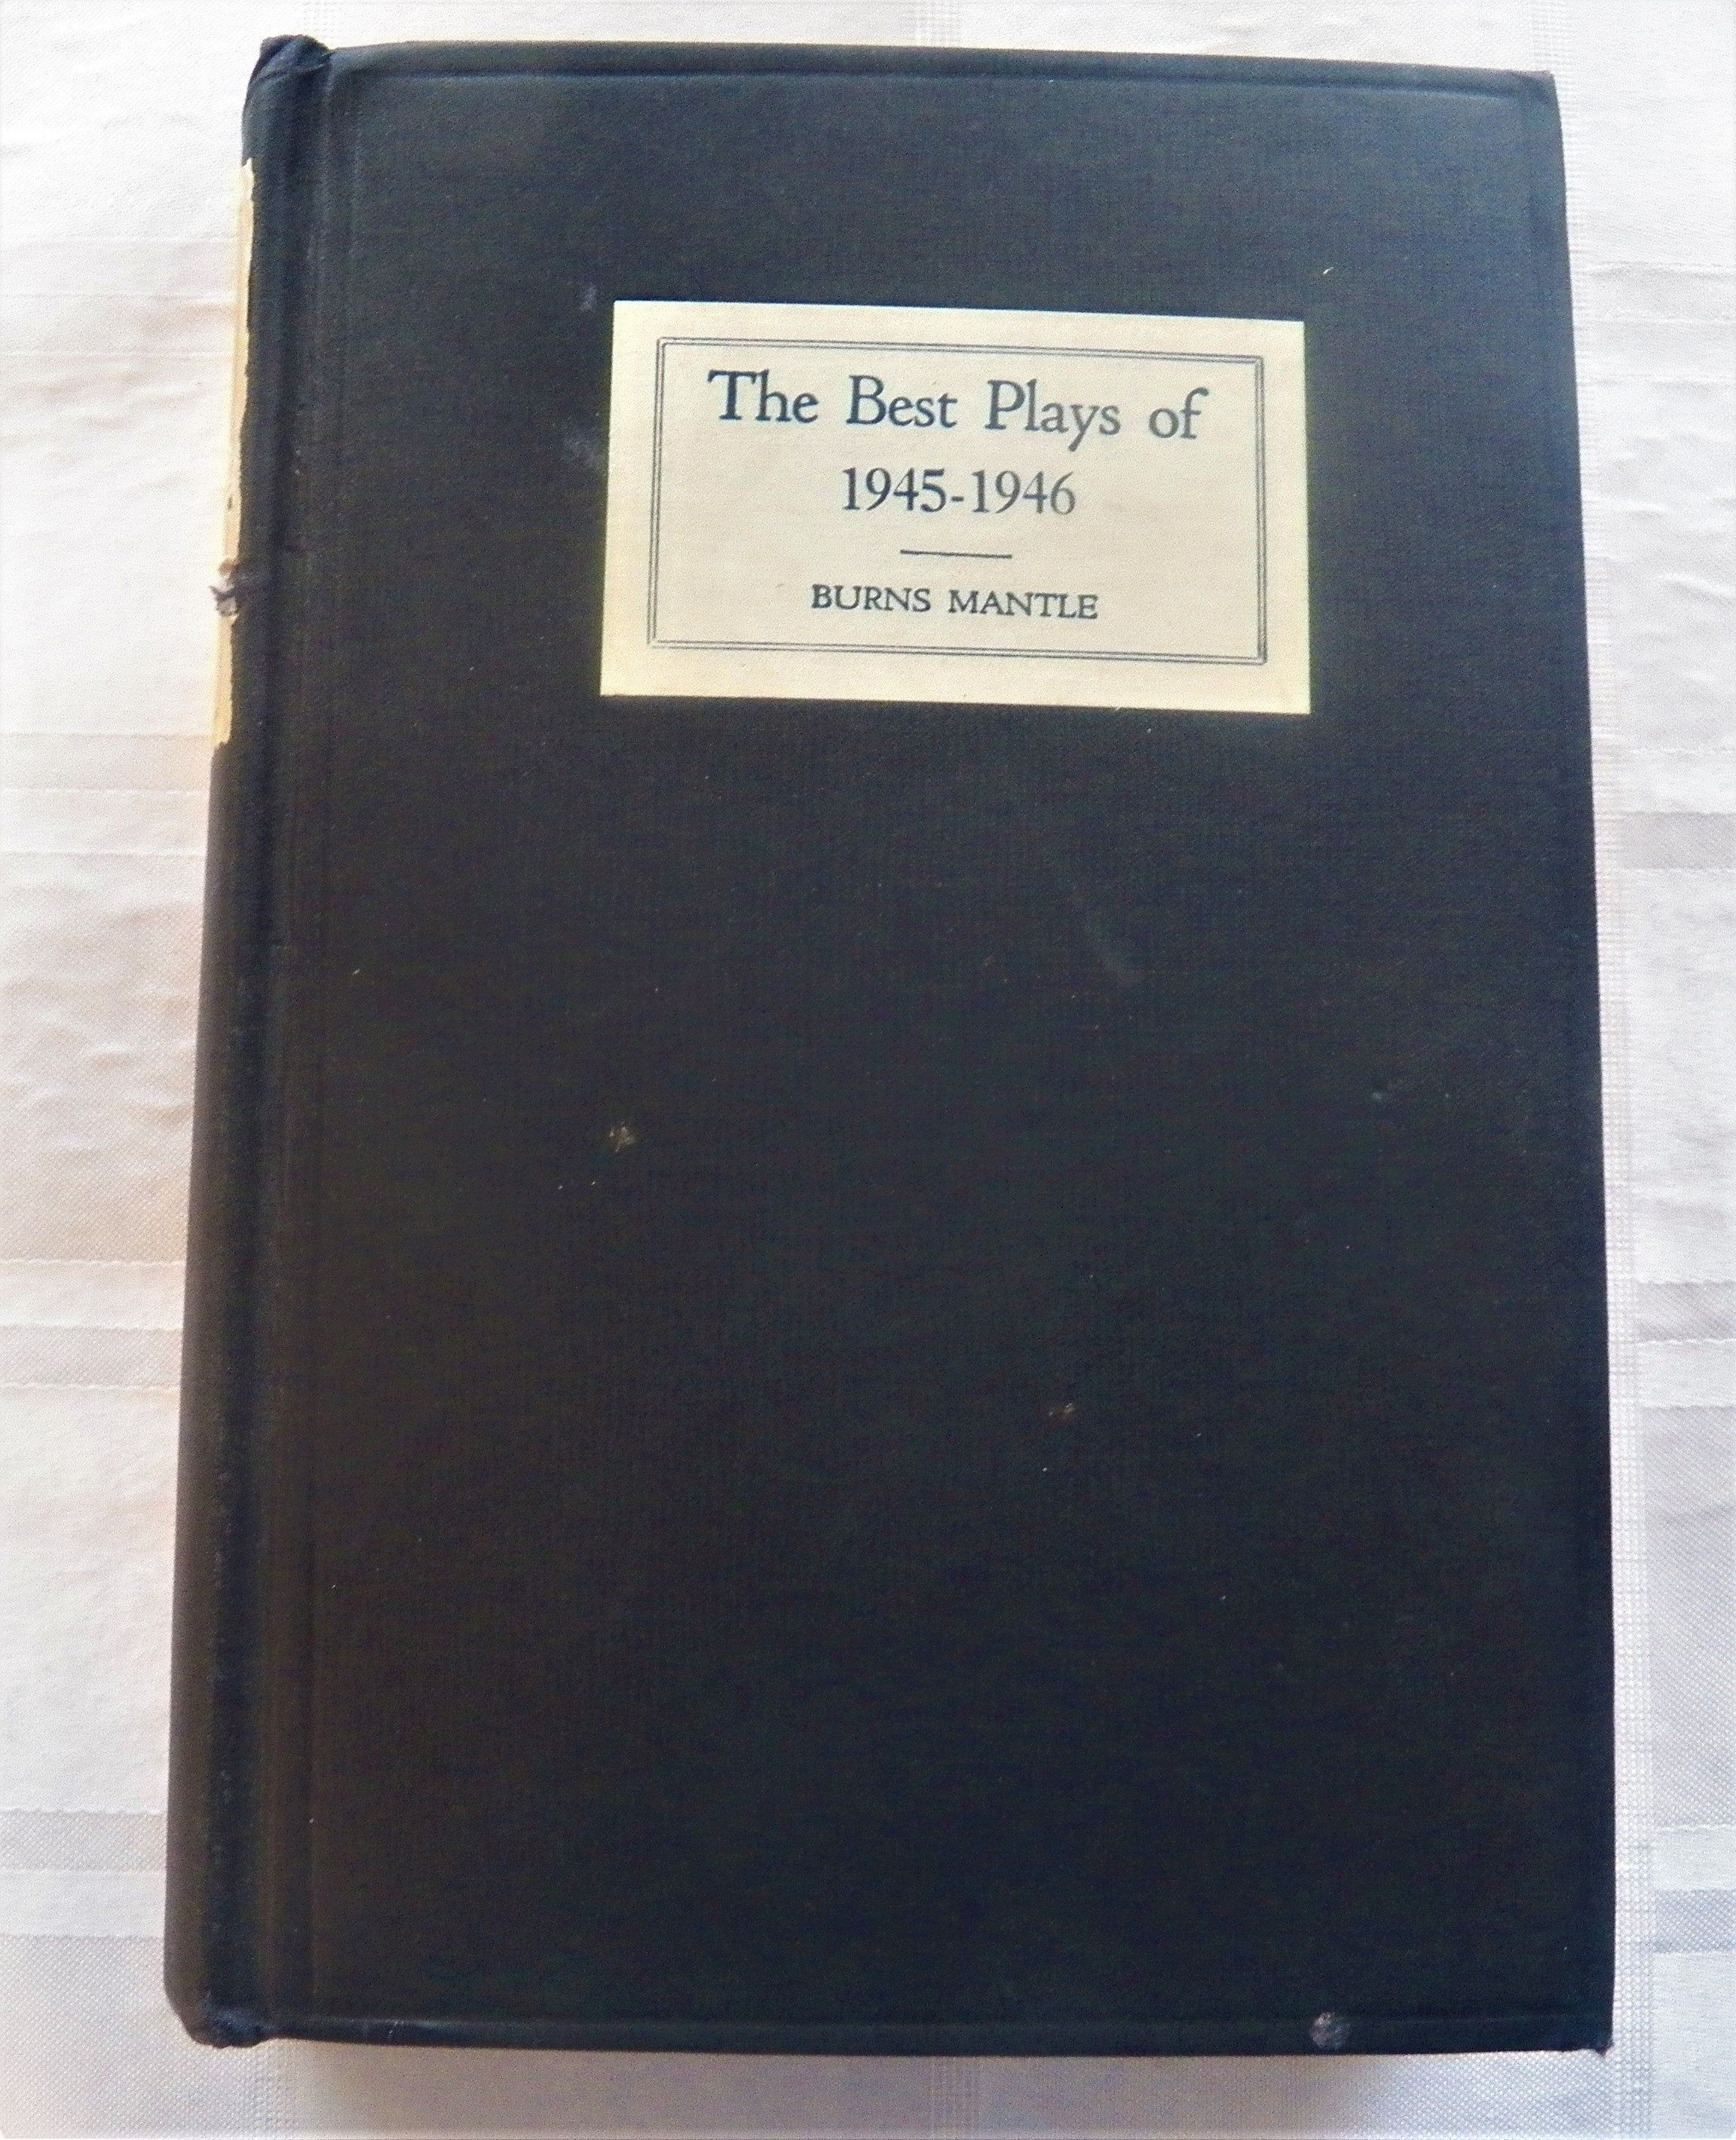 The Best Plays Of 1945 1946 Burns Mantle 1946 Hc Vintagebooks History Plays This Book Burns Mantle